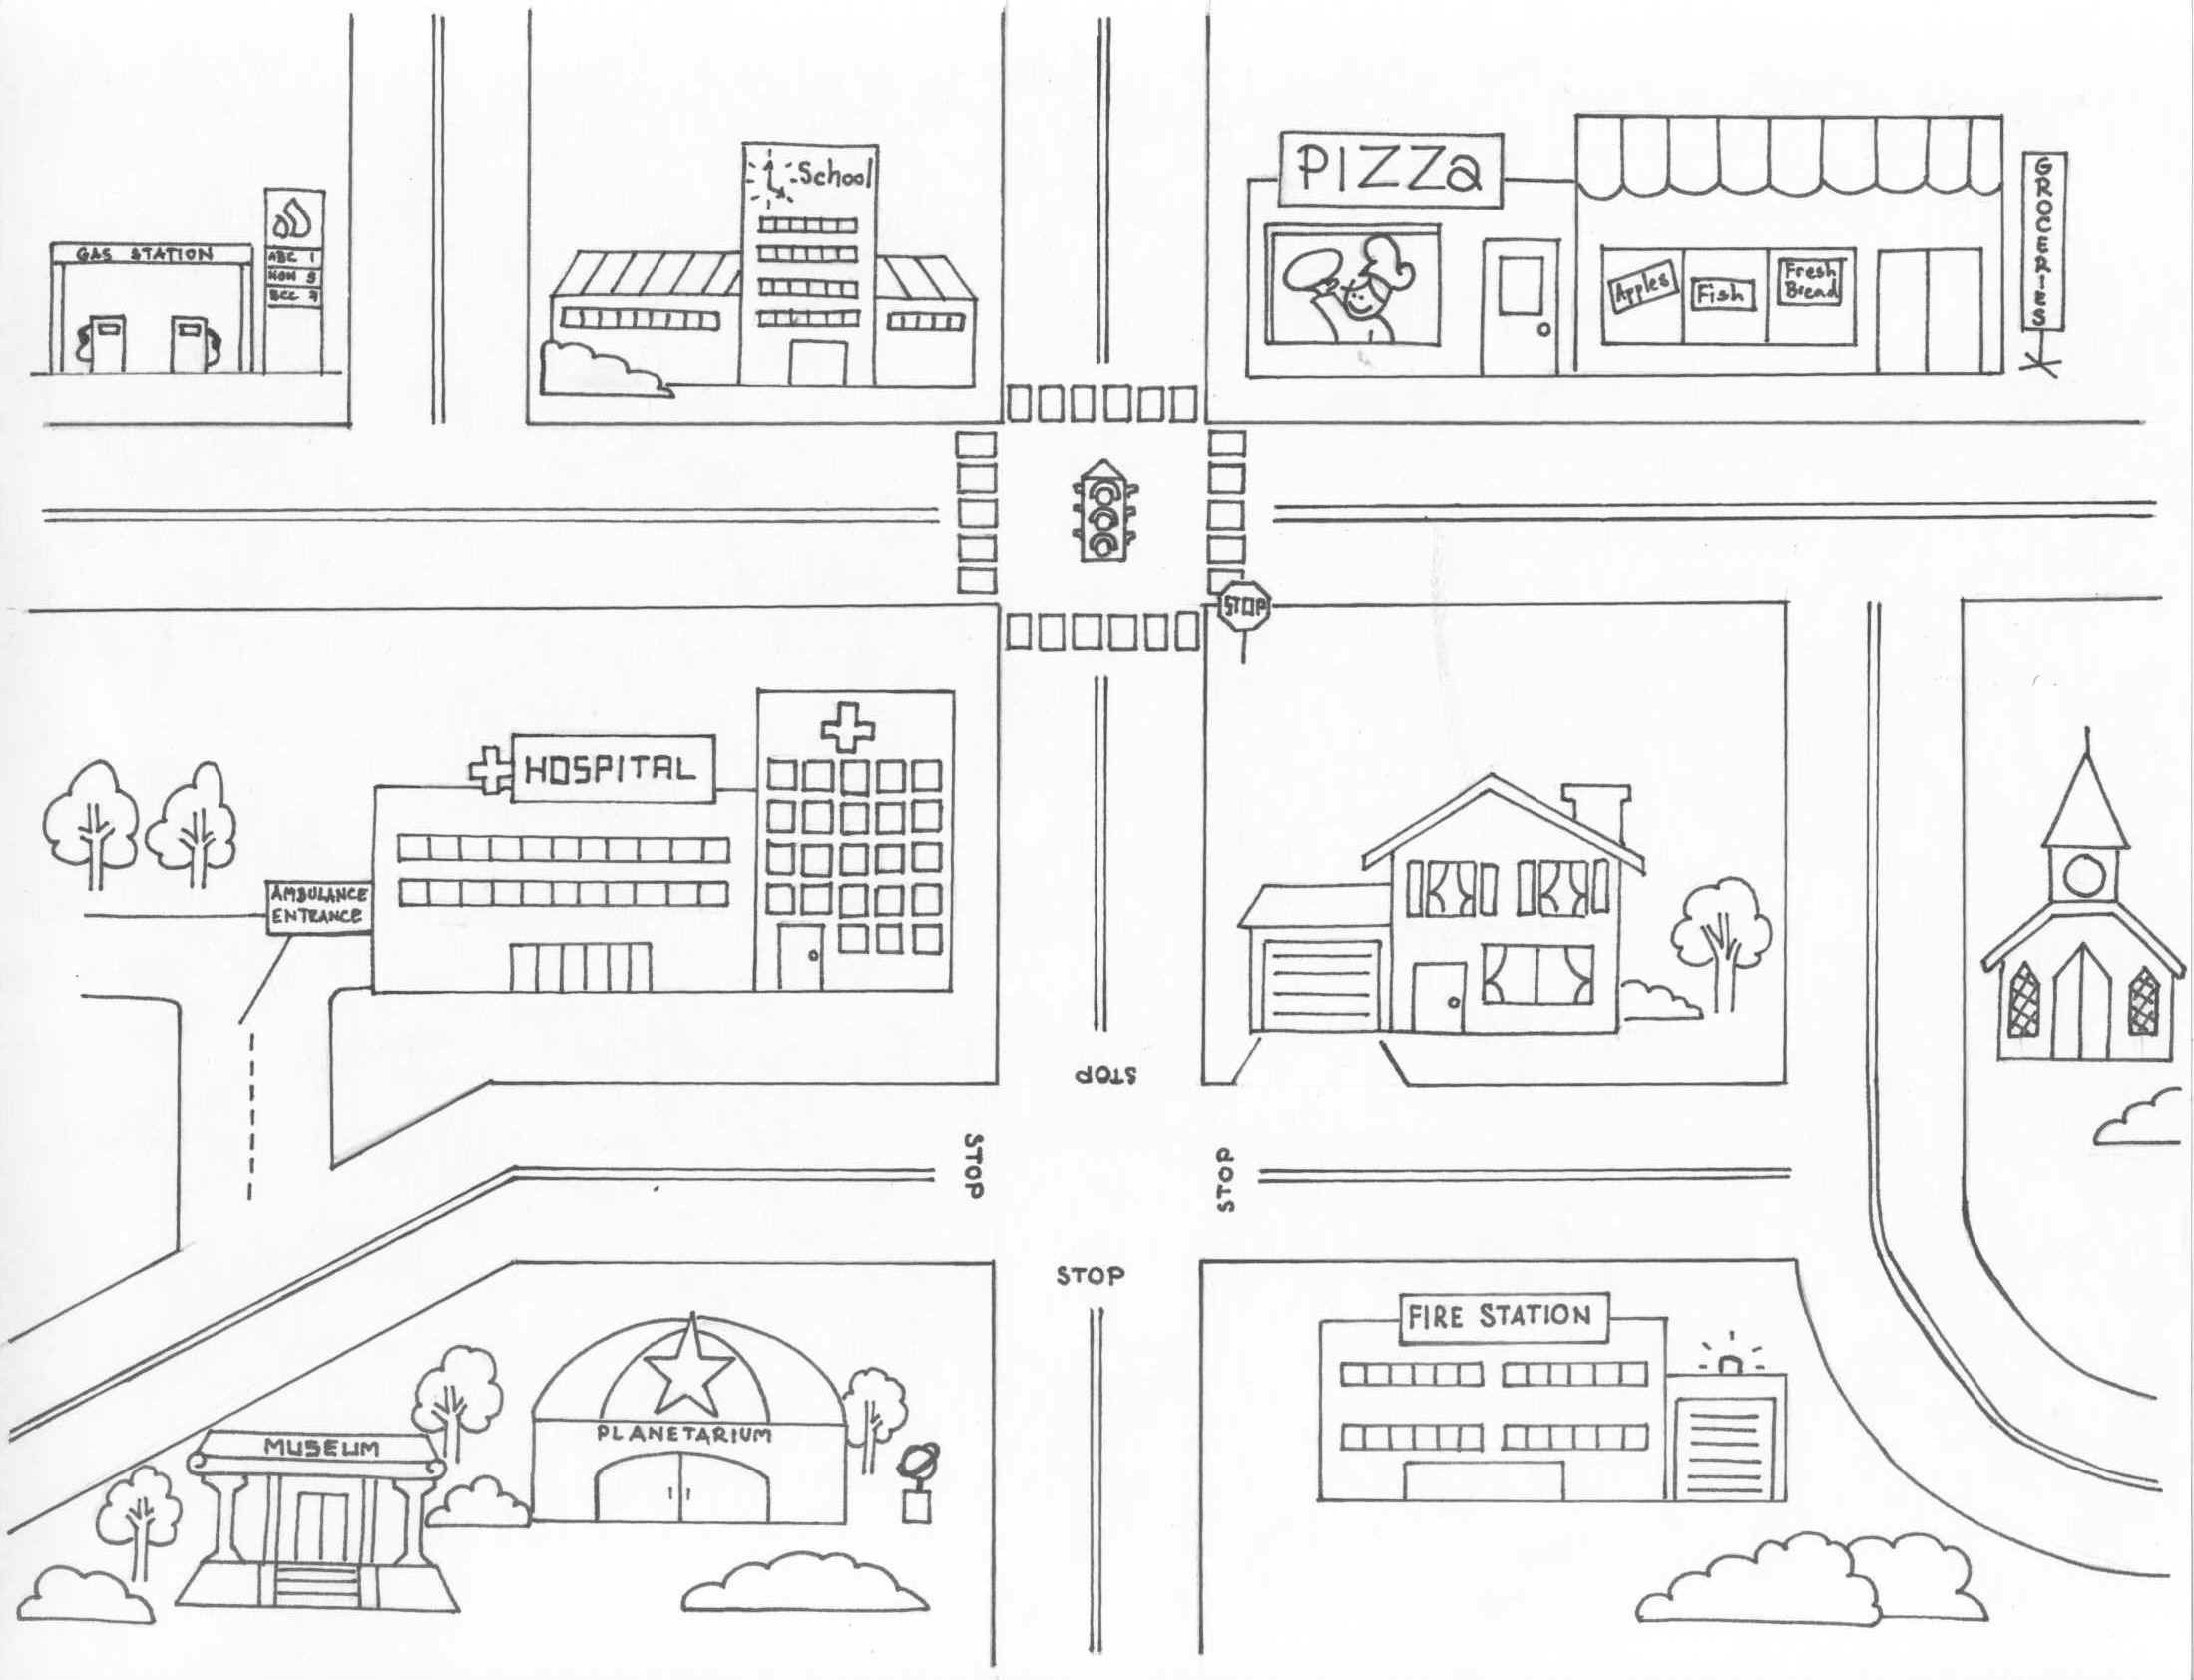 Neighborhood Map Coloring Pages Coloring Panda Image Coloring Home Maps For Kids Free Clip Art Coloring Pages